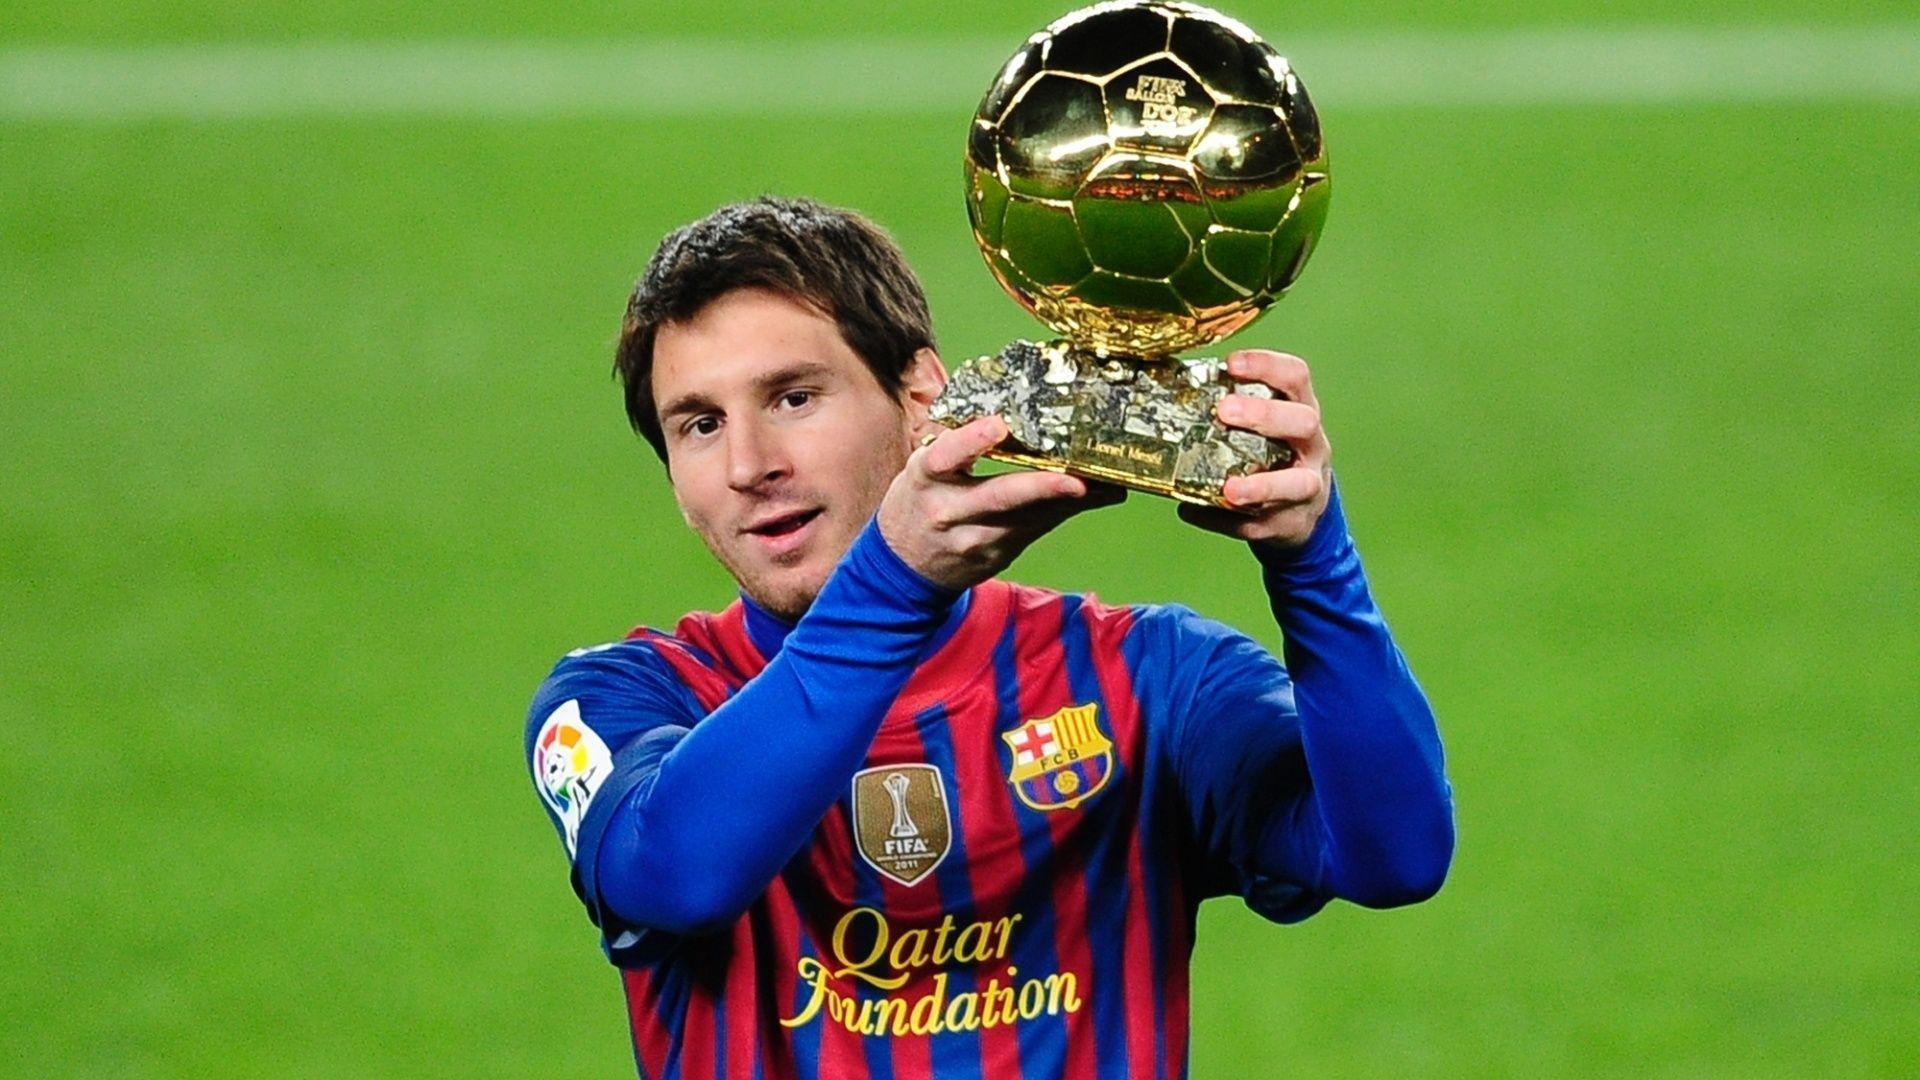 Lionel Messi Background Wallpapers